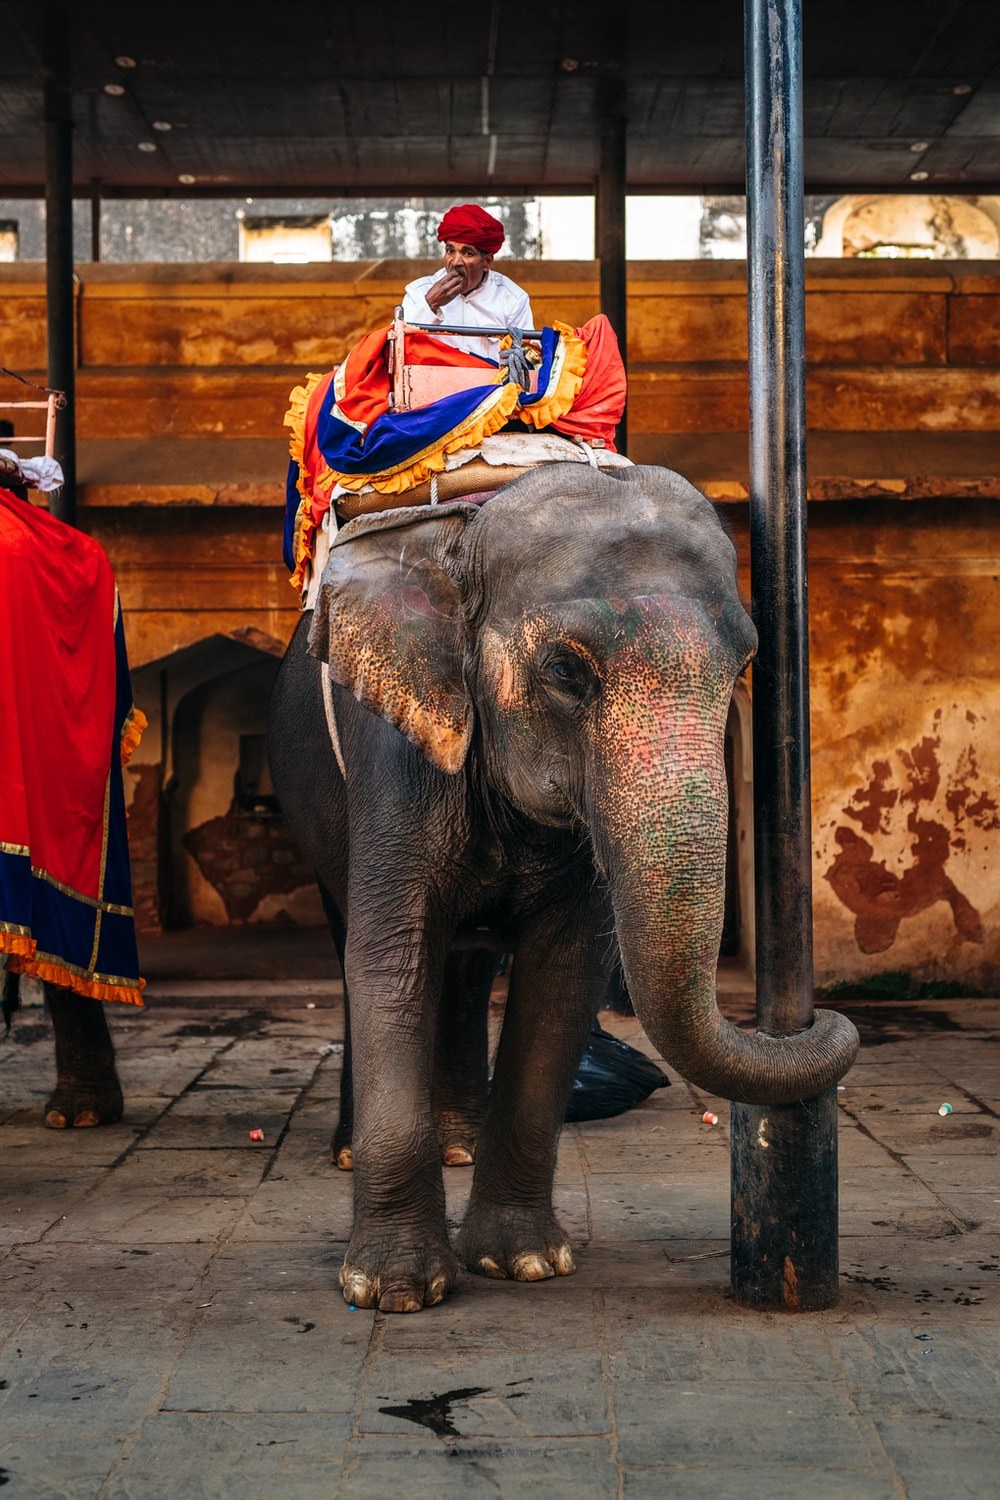 man in red and white shirt riding elephant